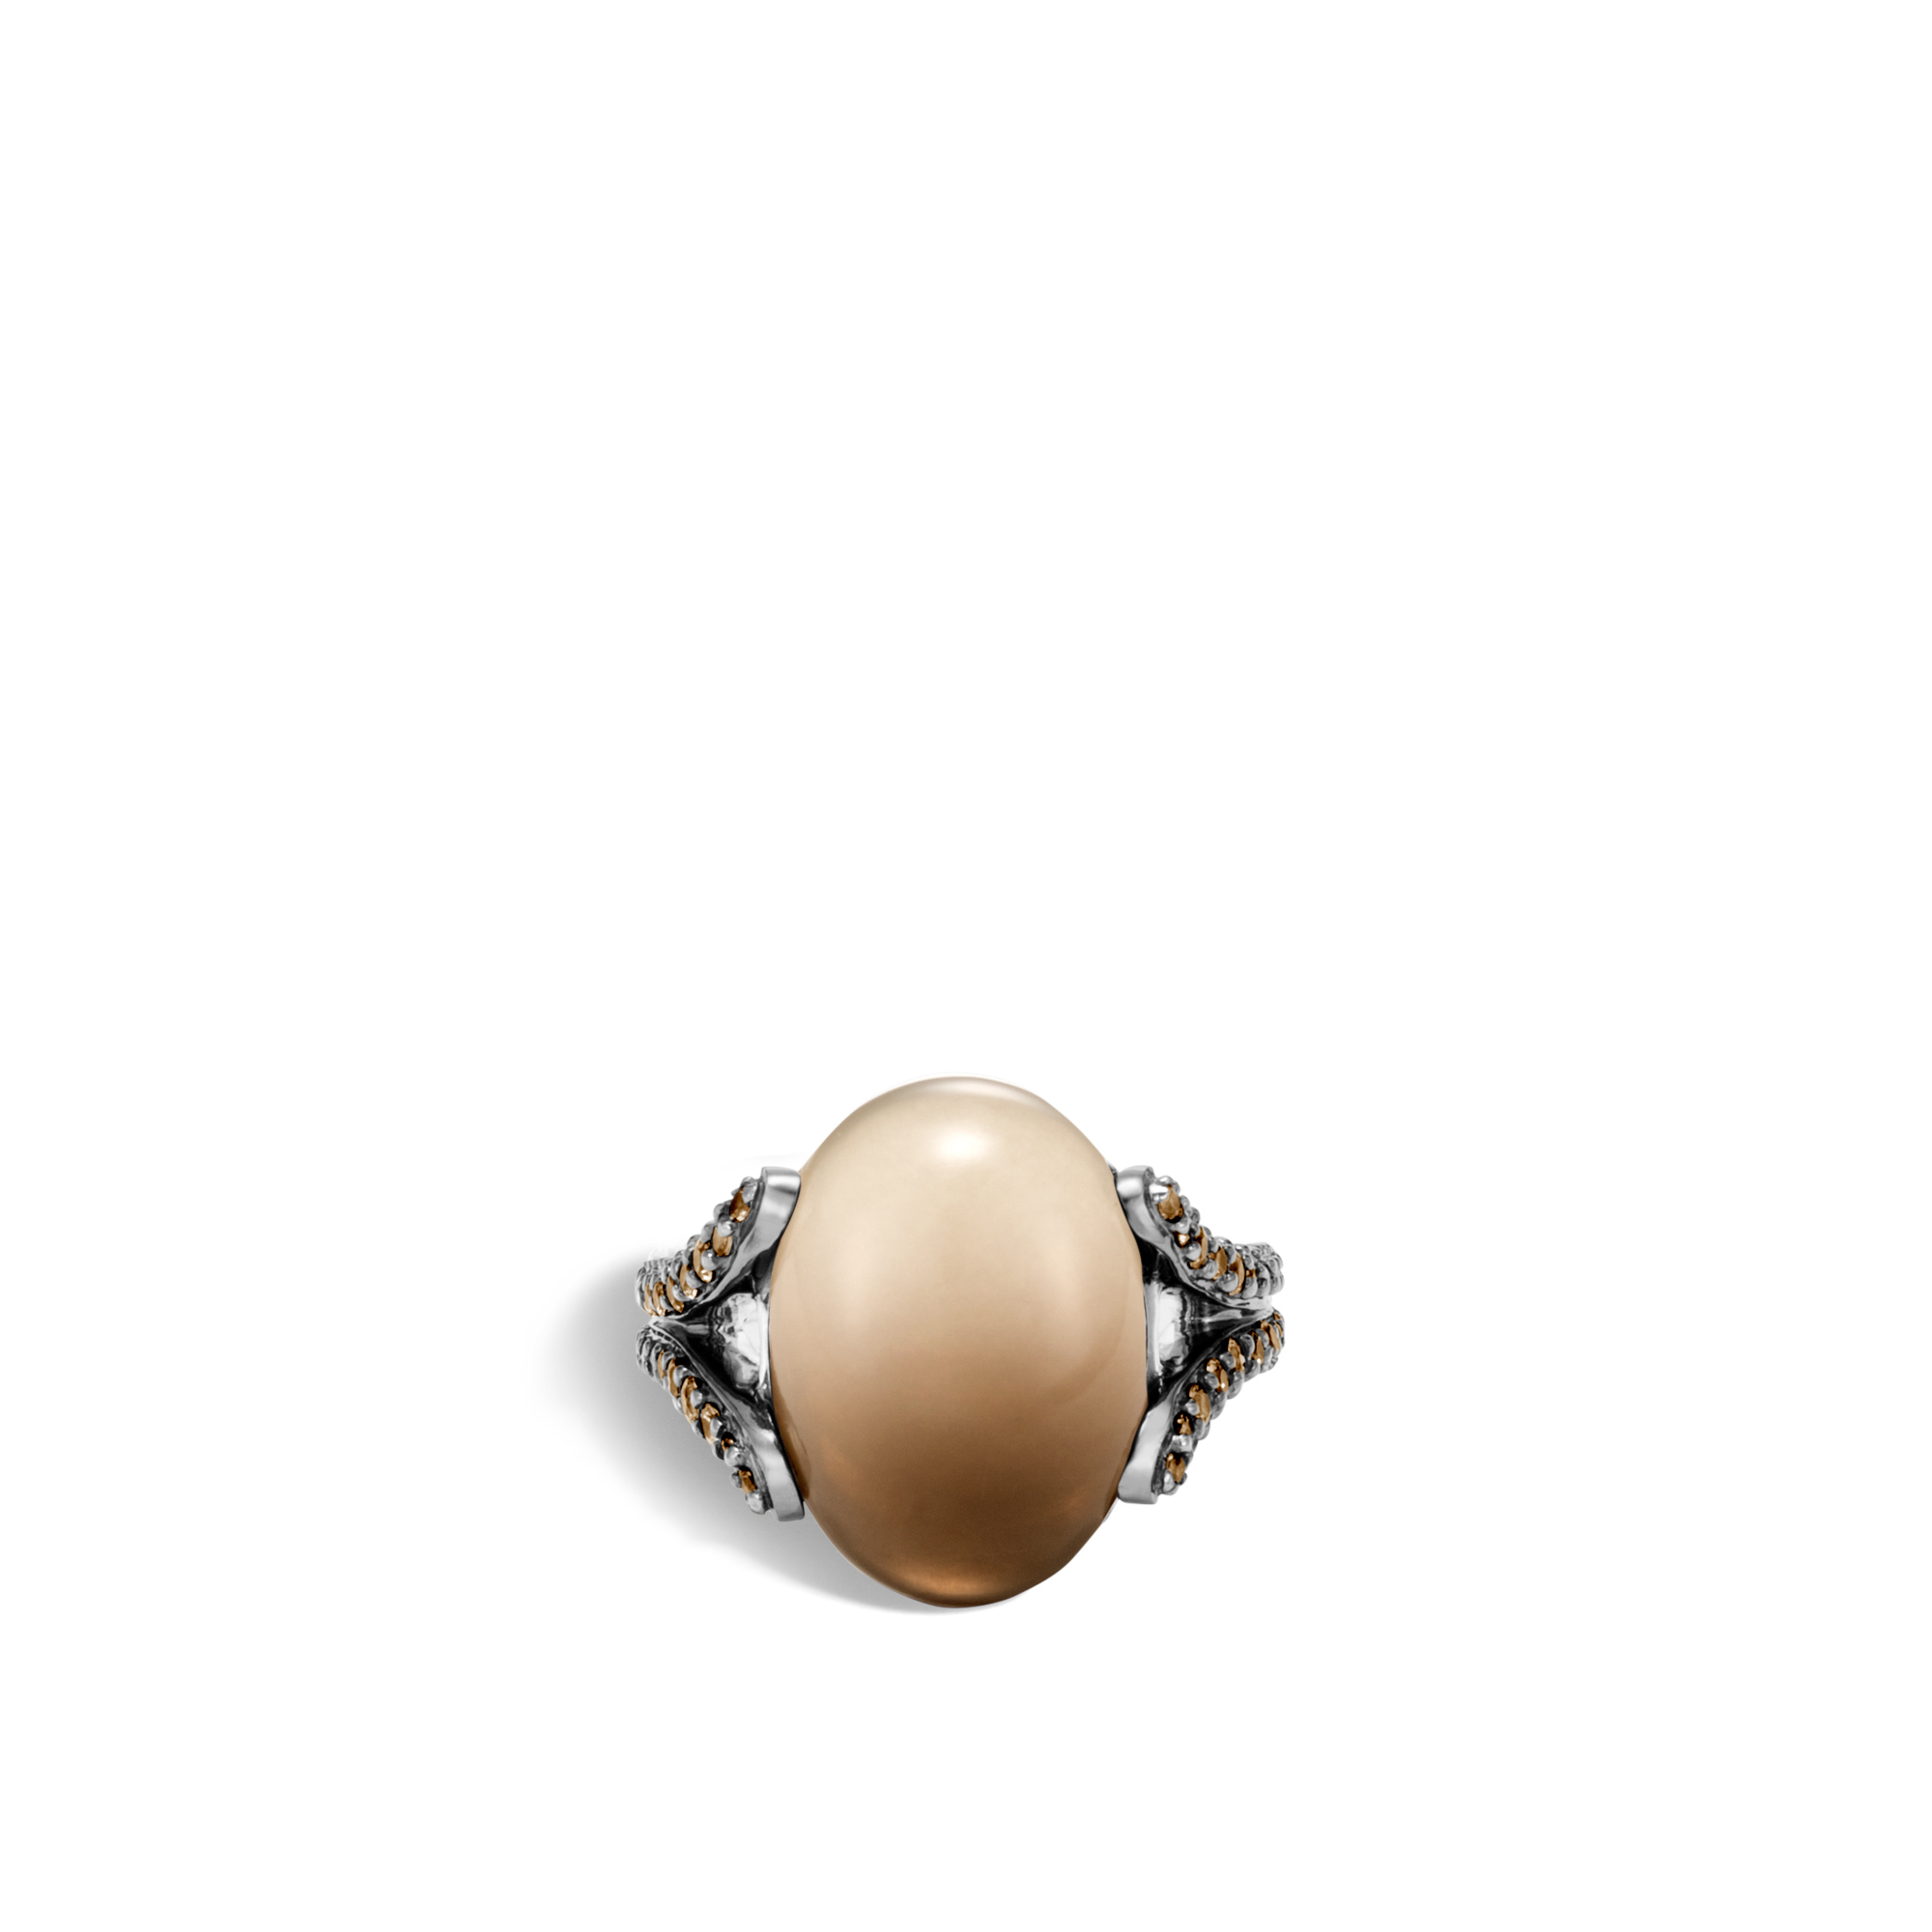 Classic Chain Celestial Orb Ring in Silver, 17x12MM Gemstone, Bicolor Smoky Quartz, large